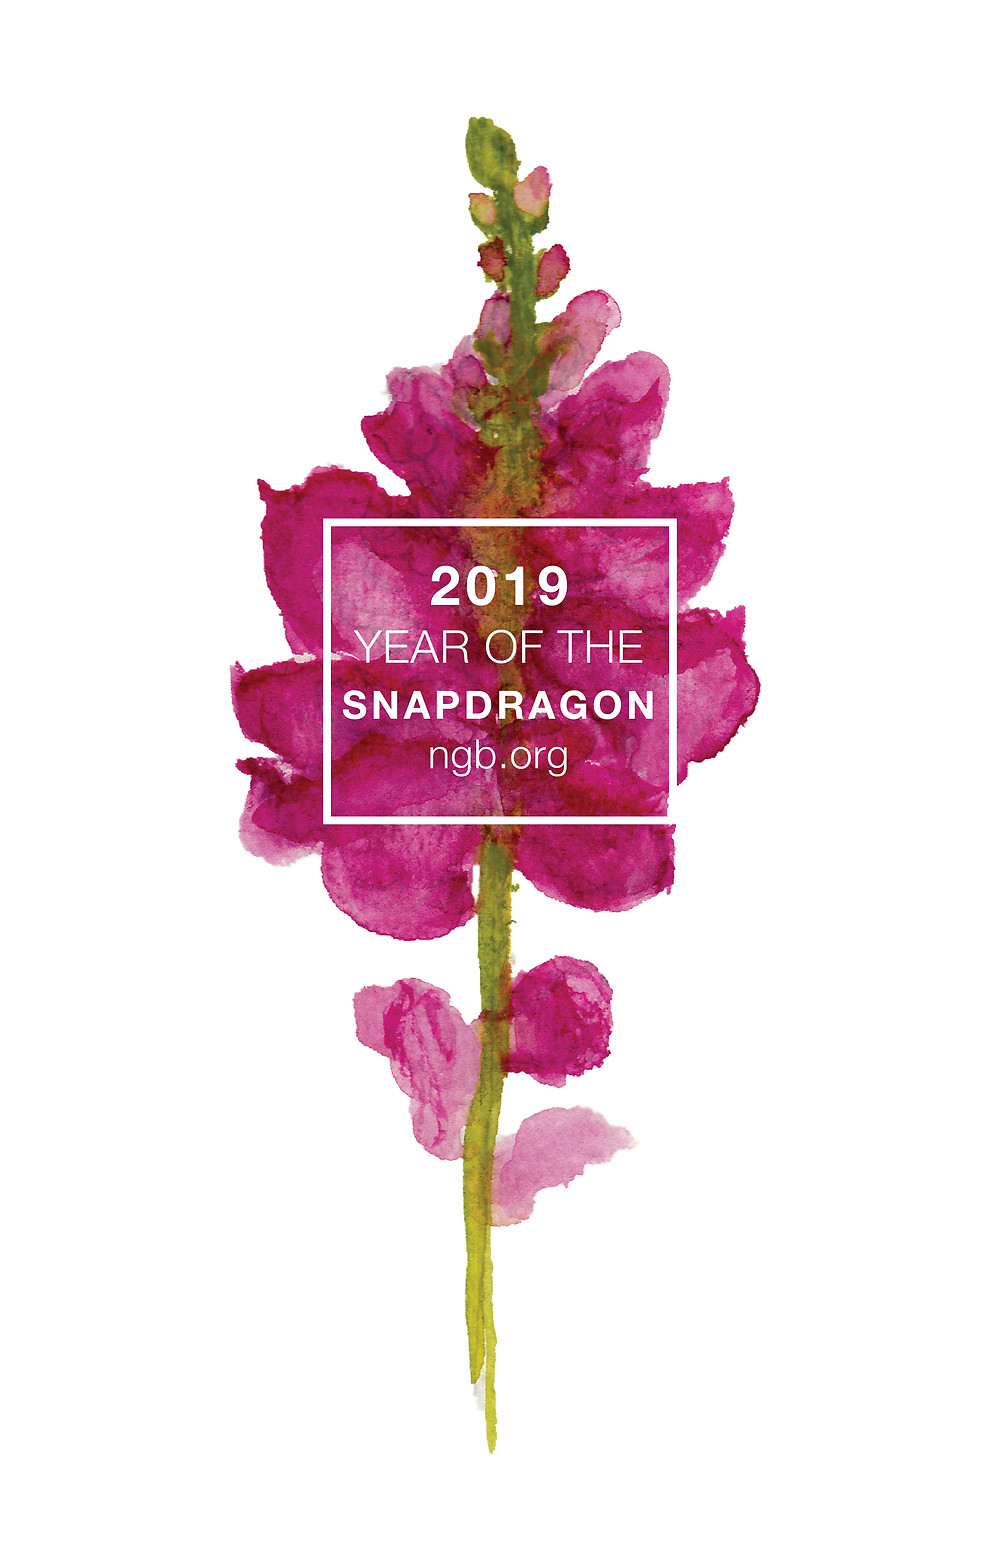 The National Garden Bureau has named 2019 The Year of the Snapdragon